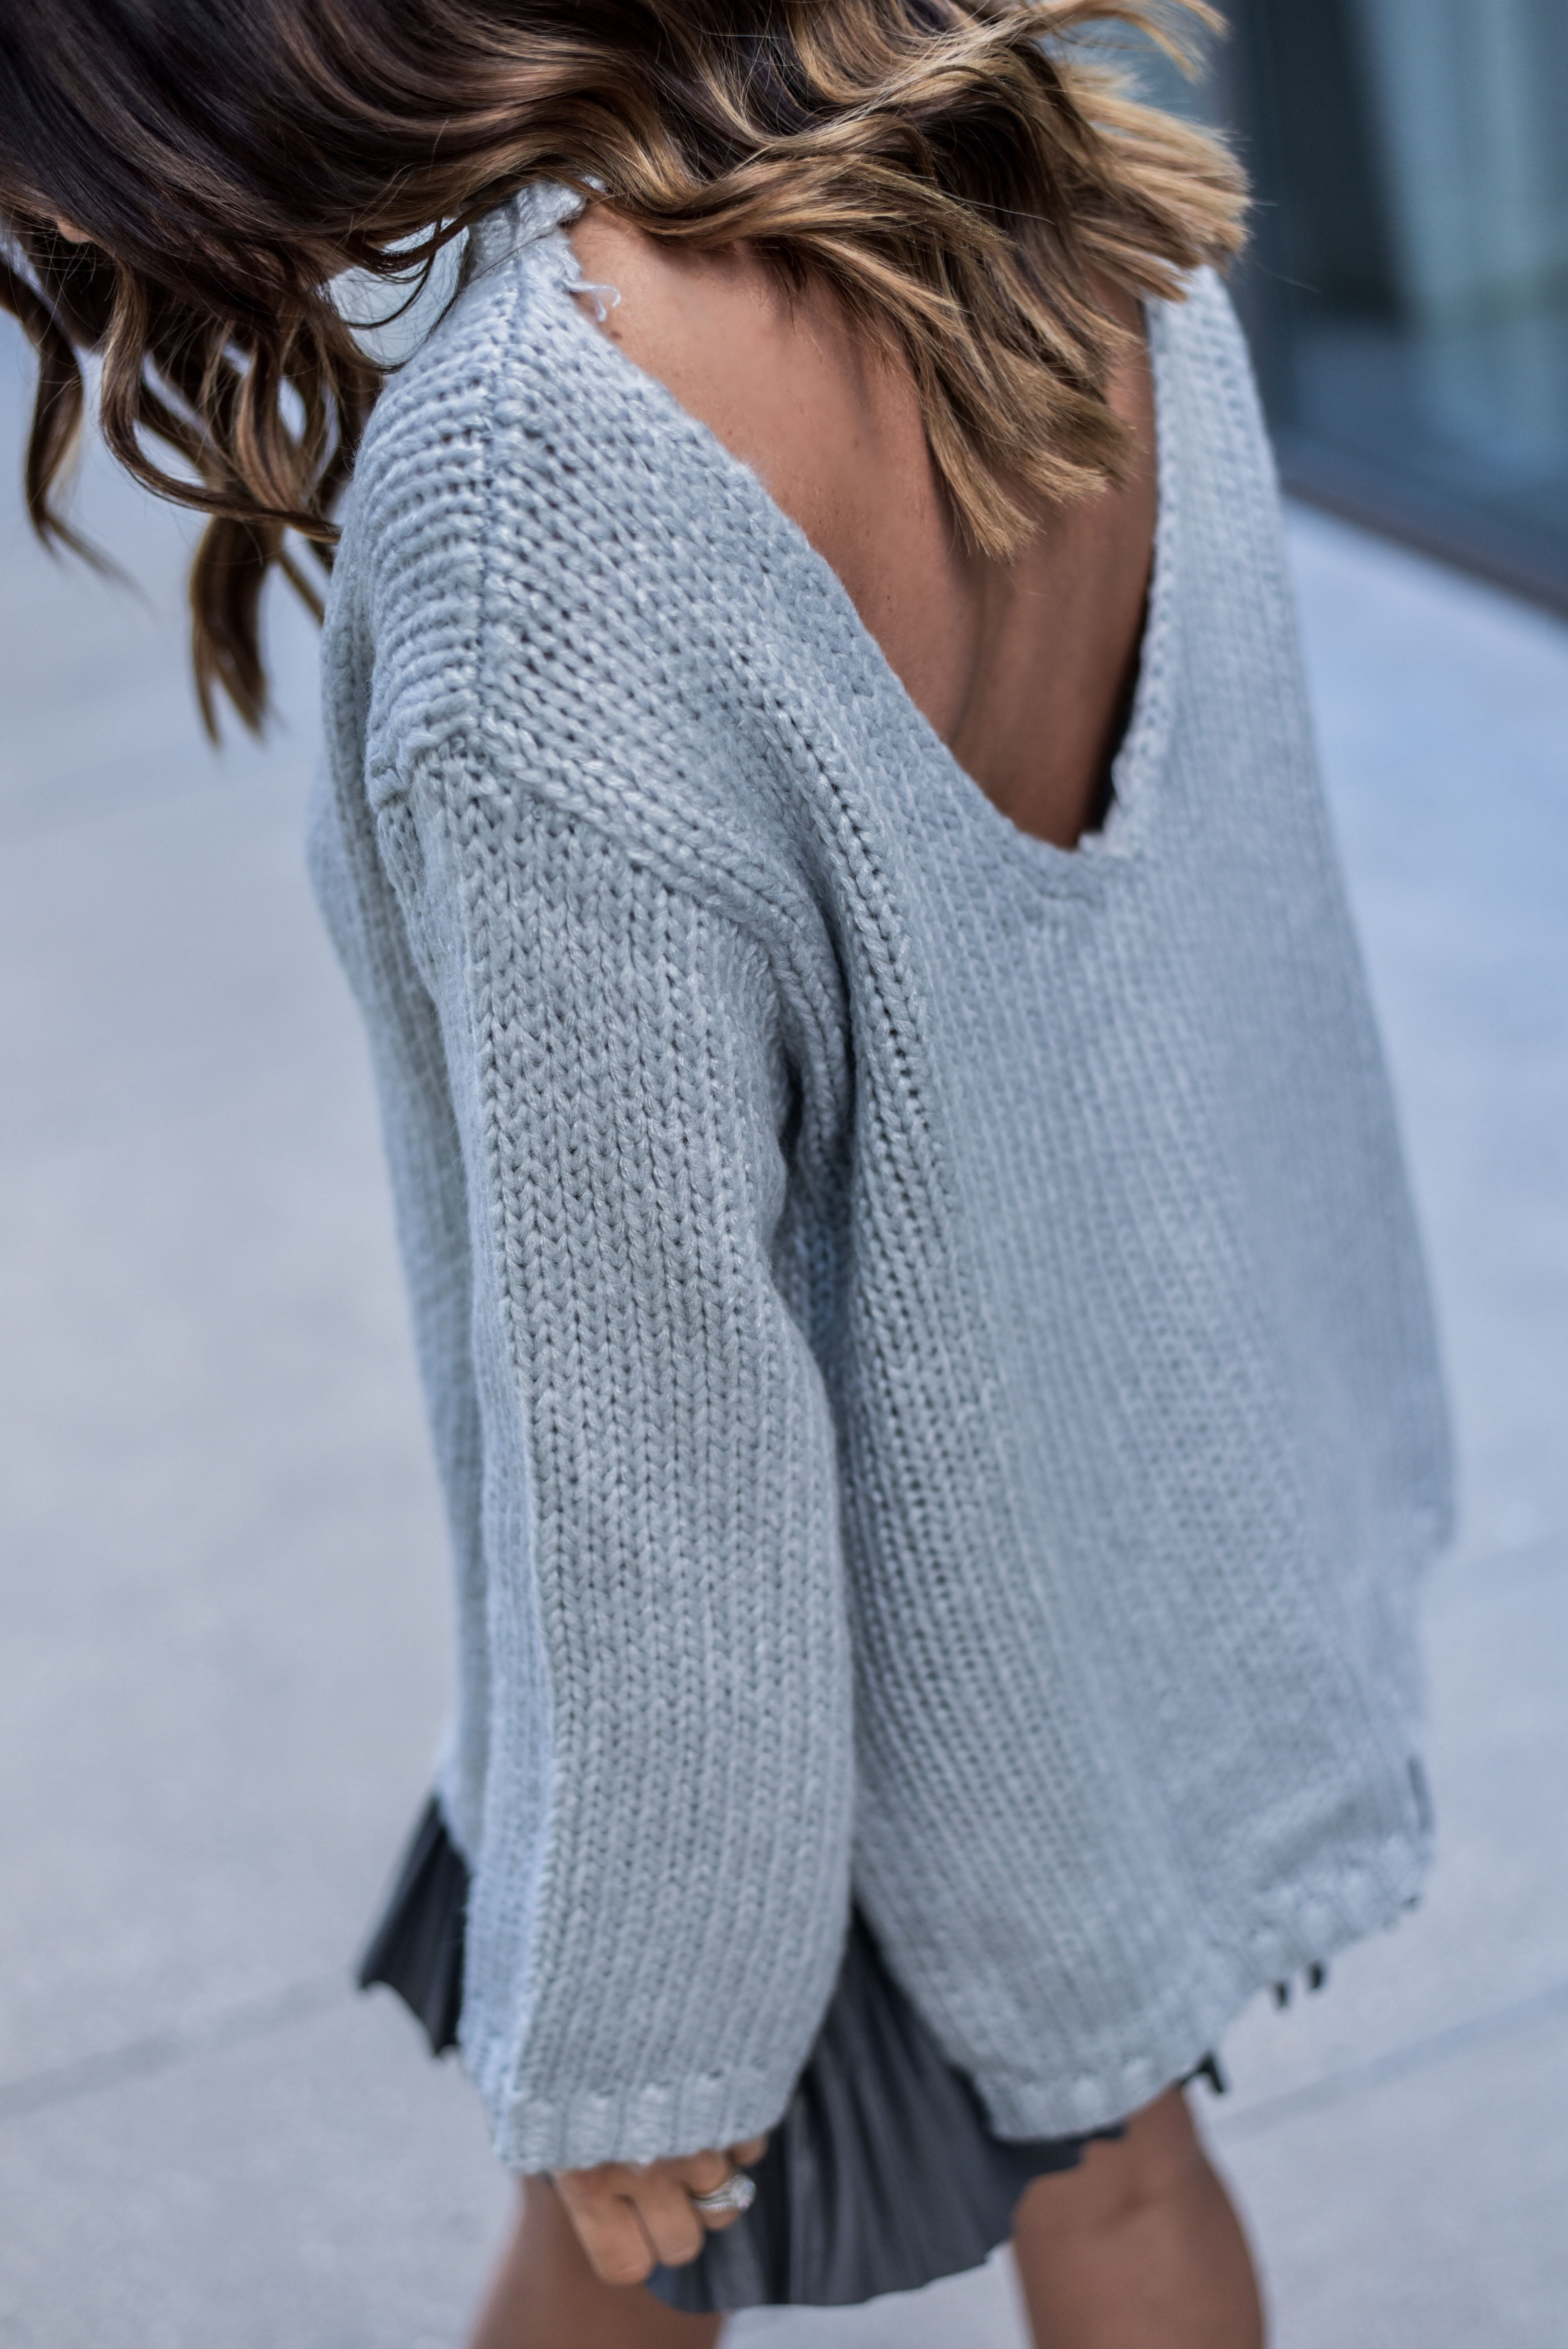 cutout back sweater in grey http://www.flauntandcenter.com